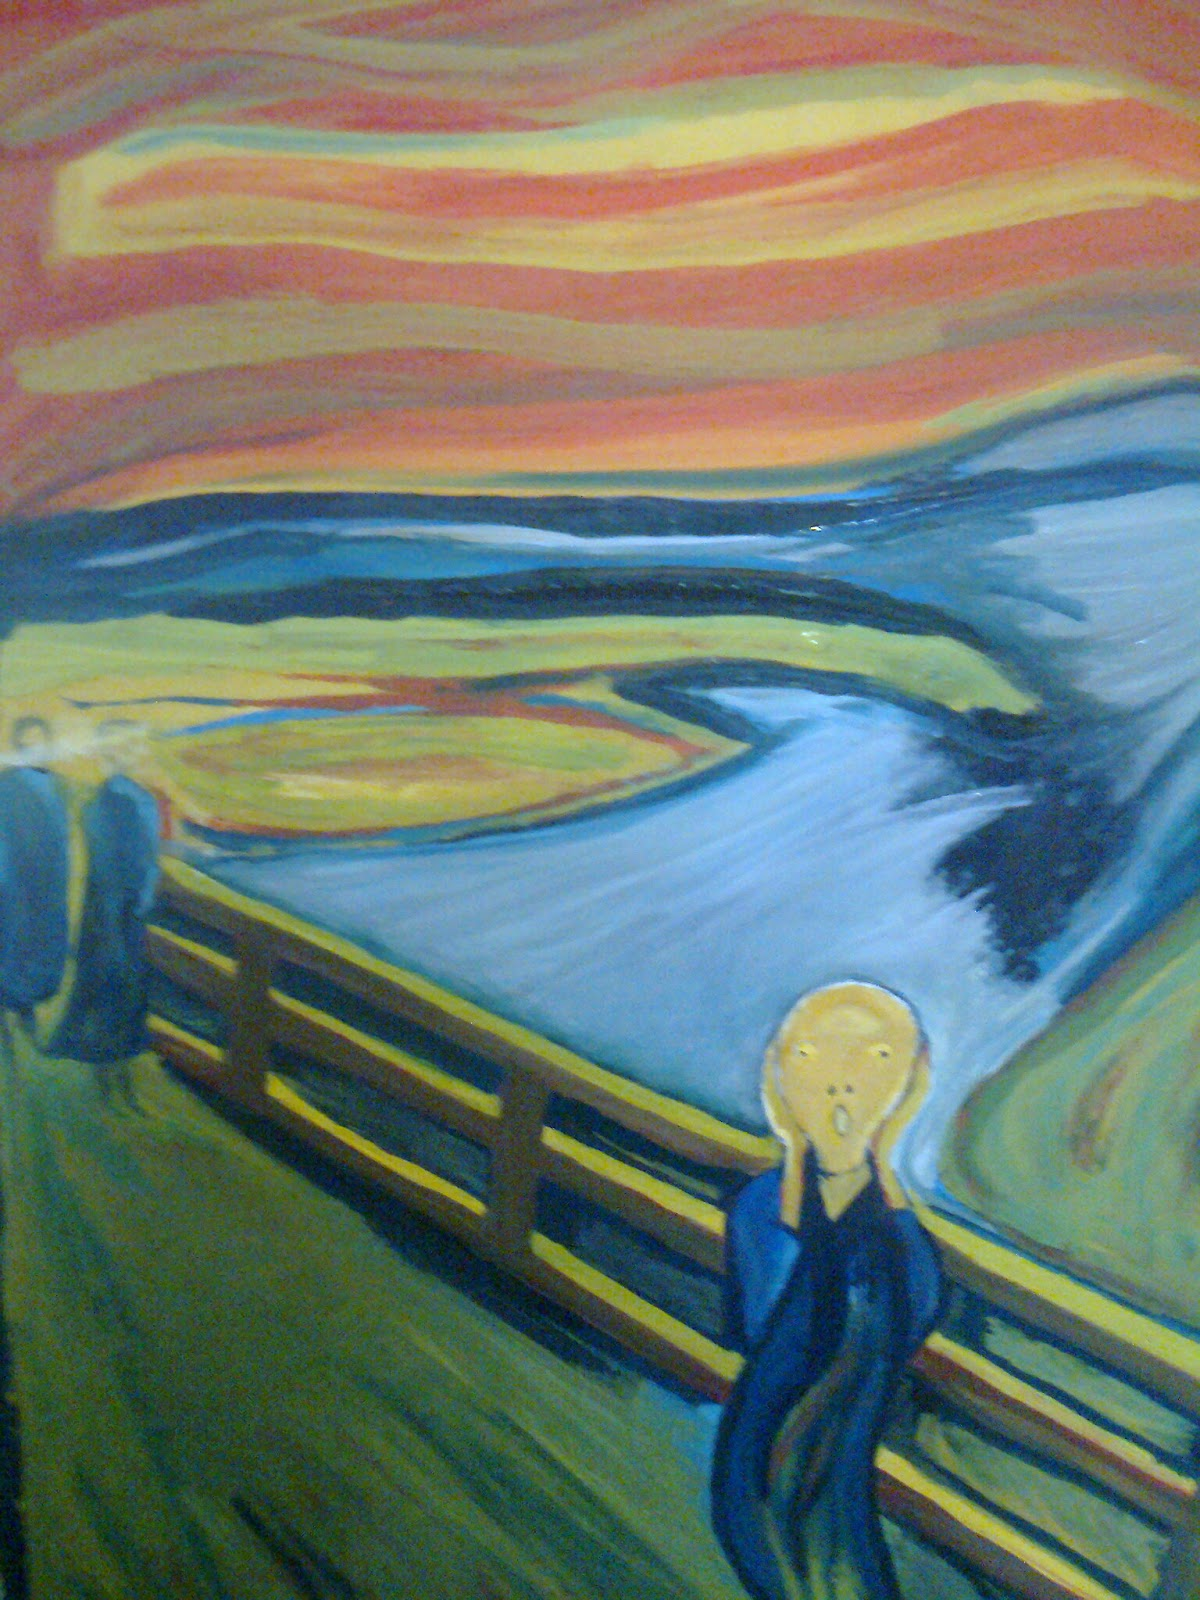 Scream: A tribute to Munch